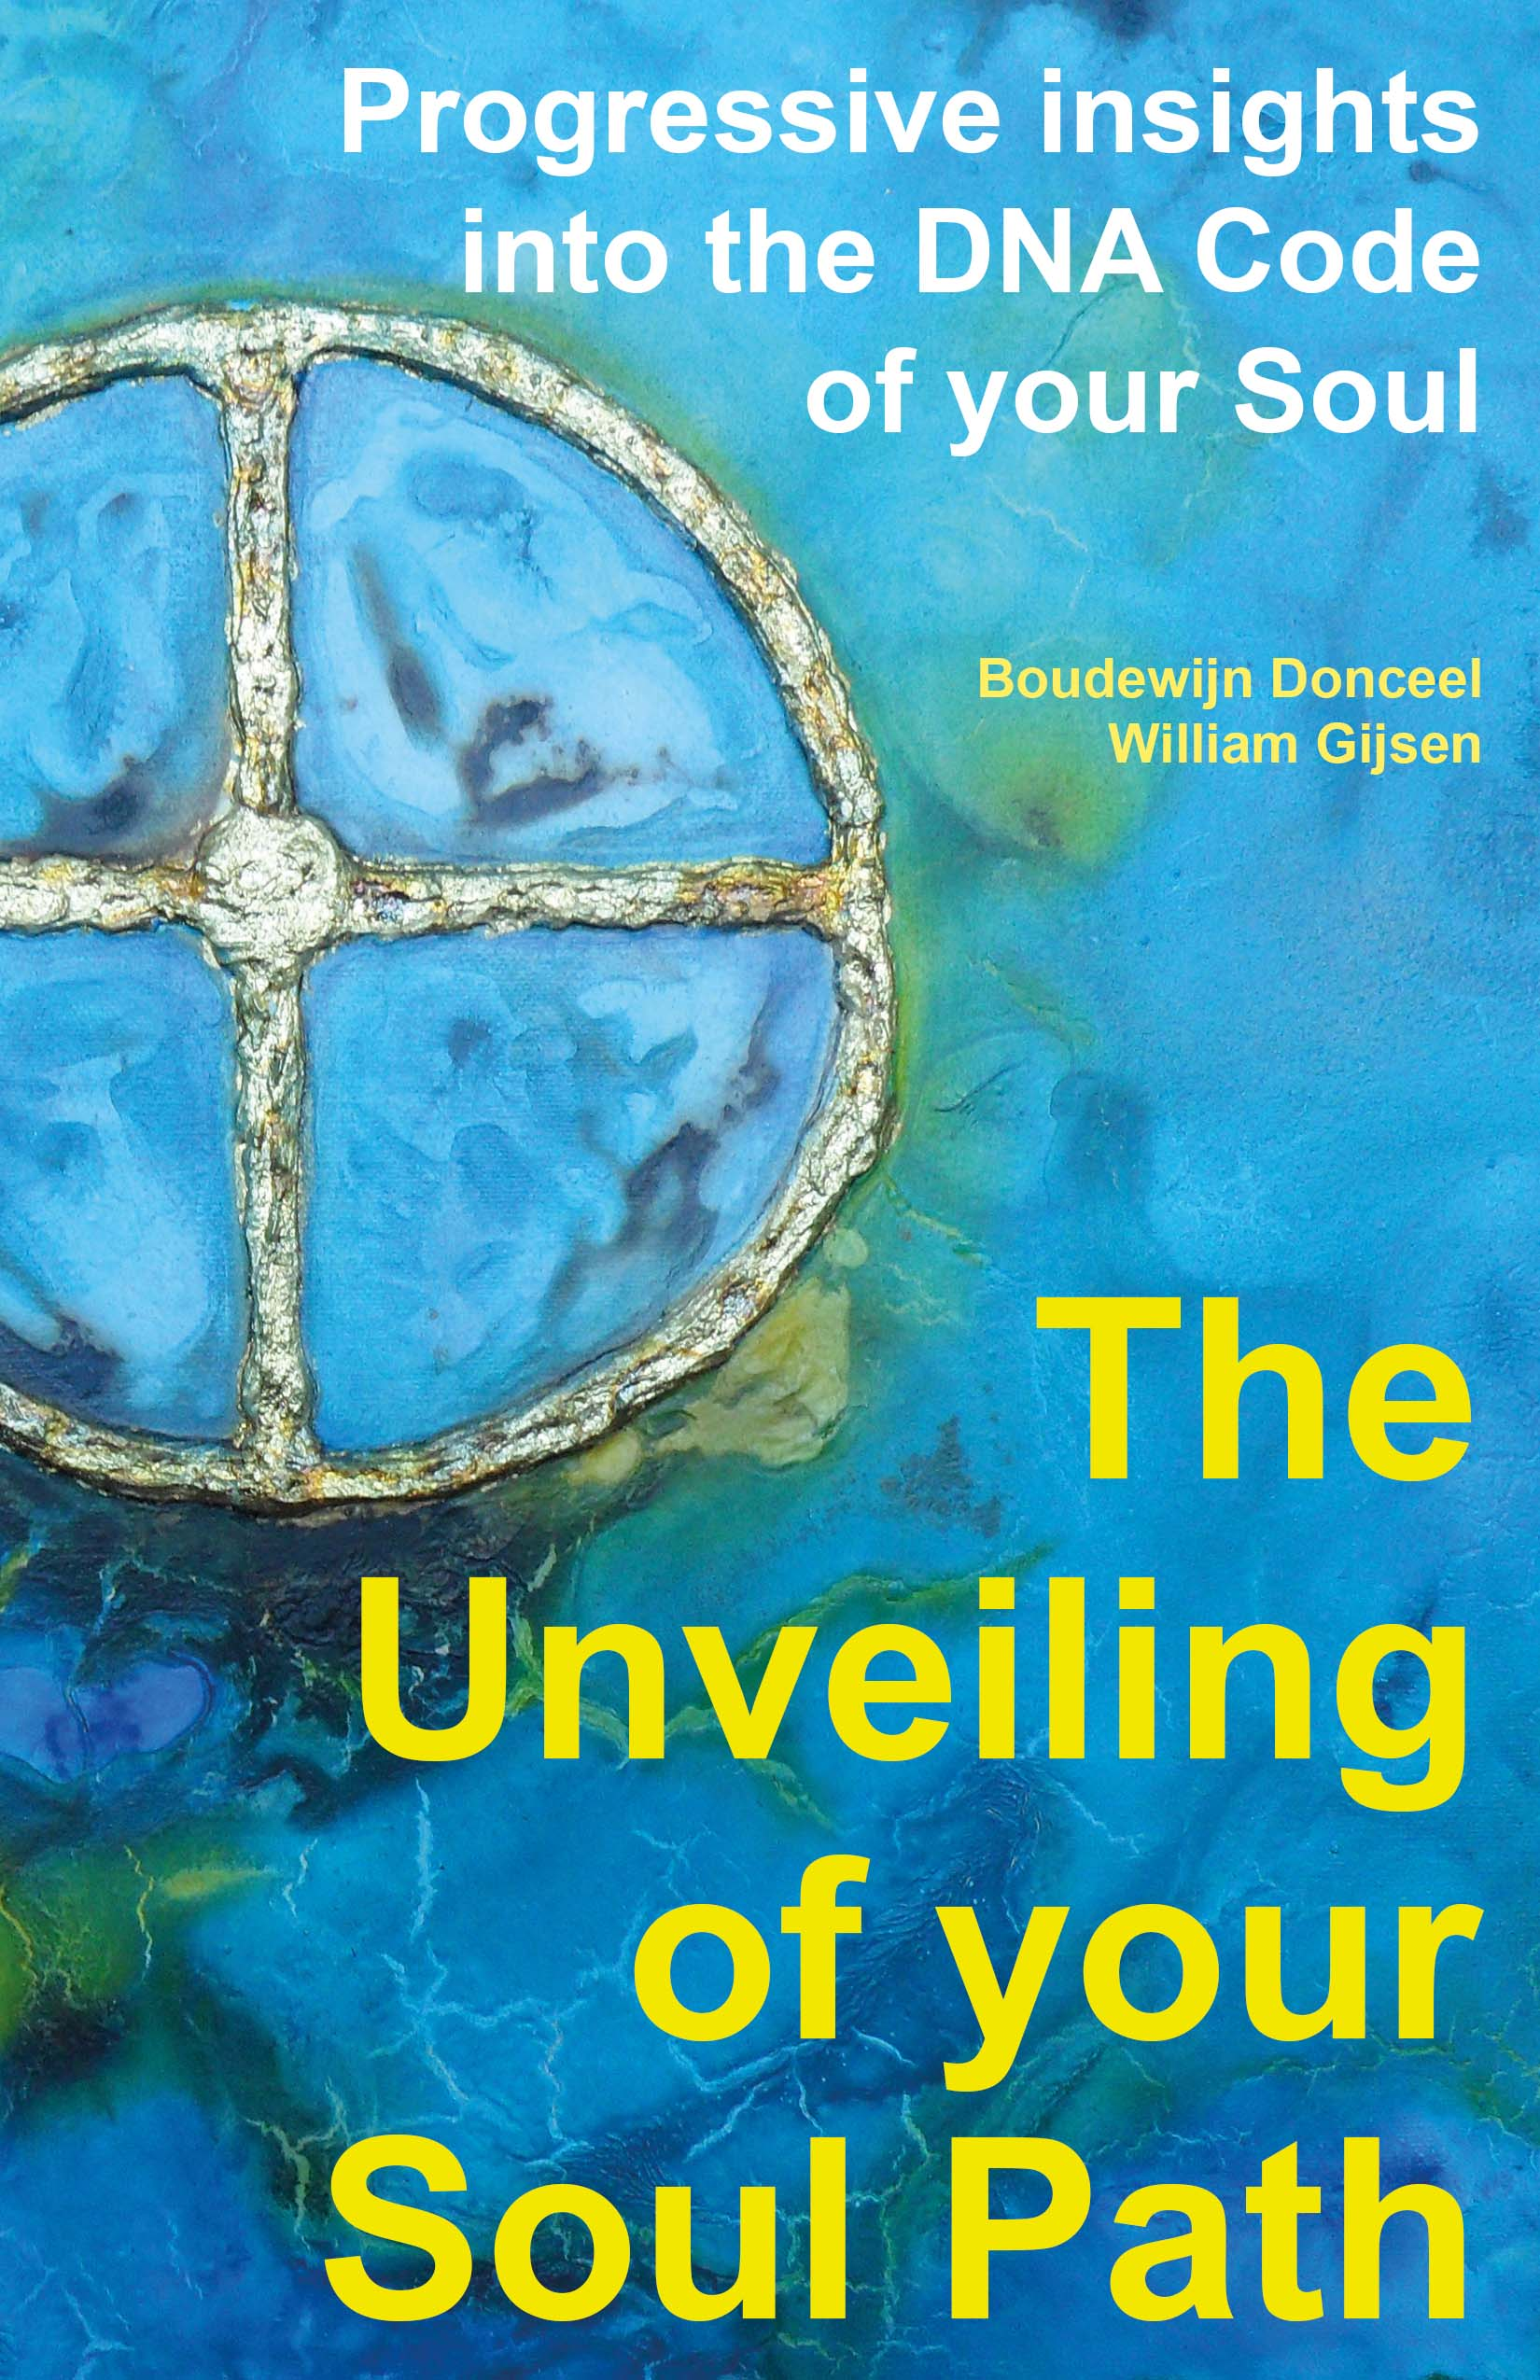 The Unveiling of your Soul Path Image